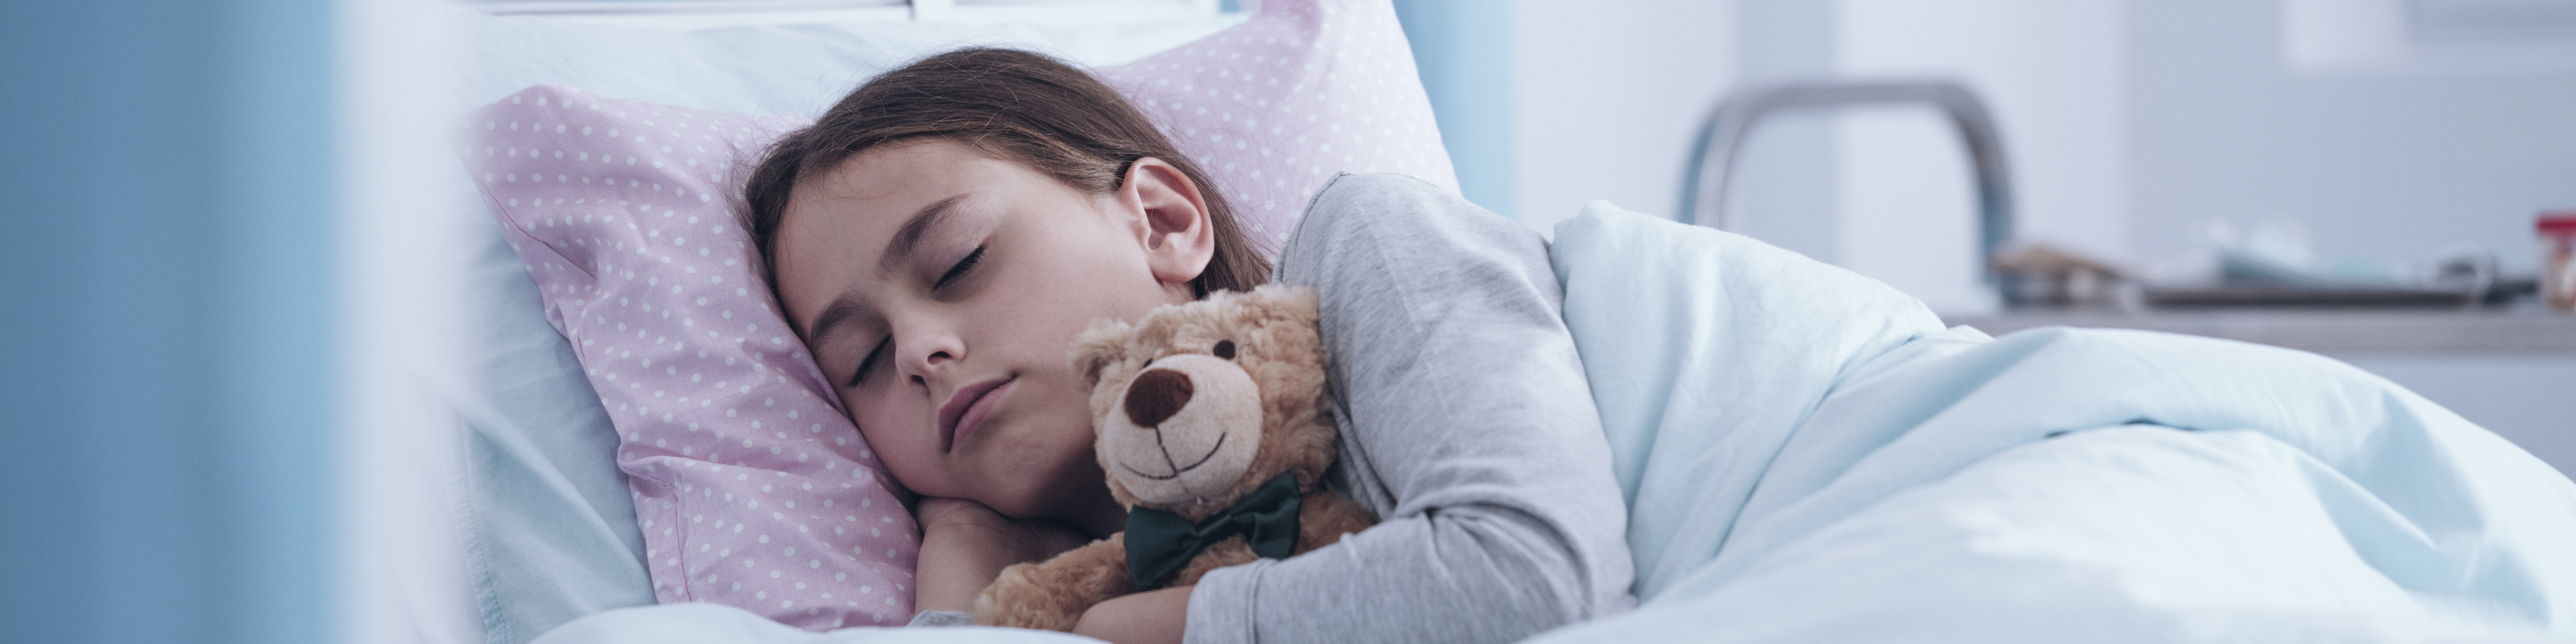 Pediatric sepsis: Three steps to support prevention